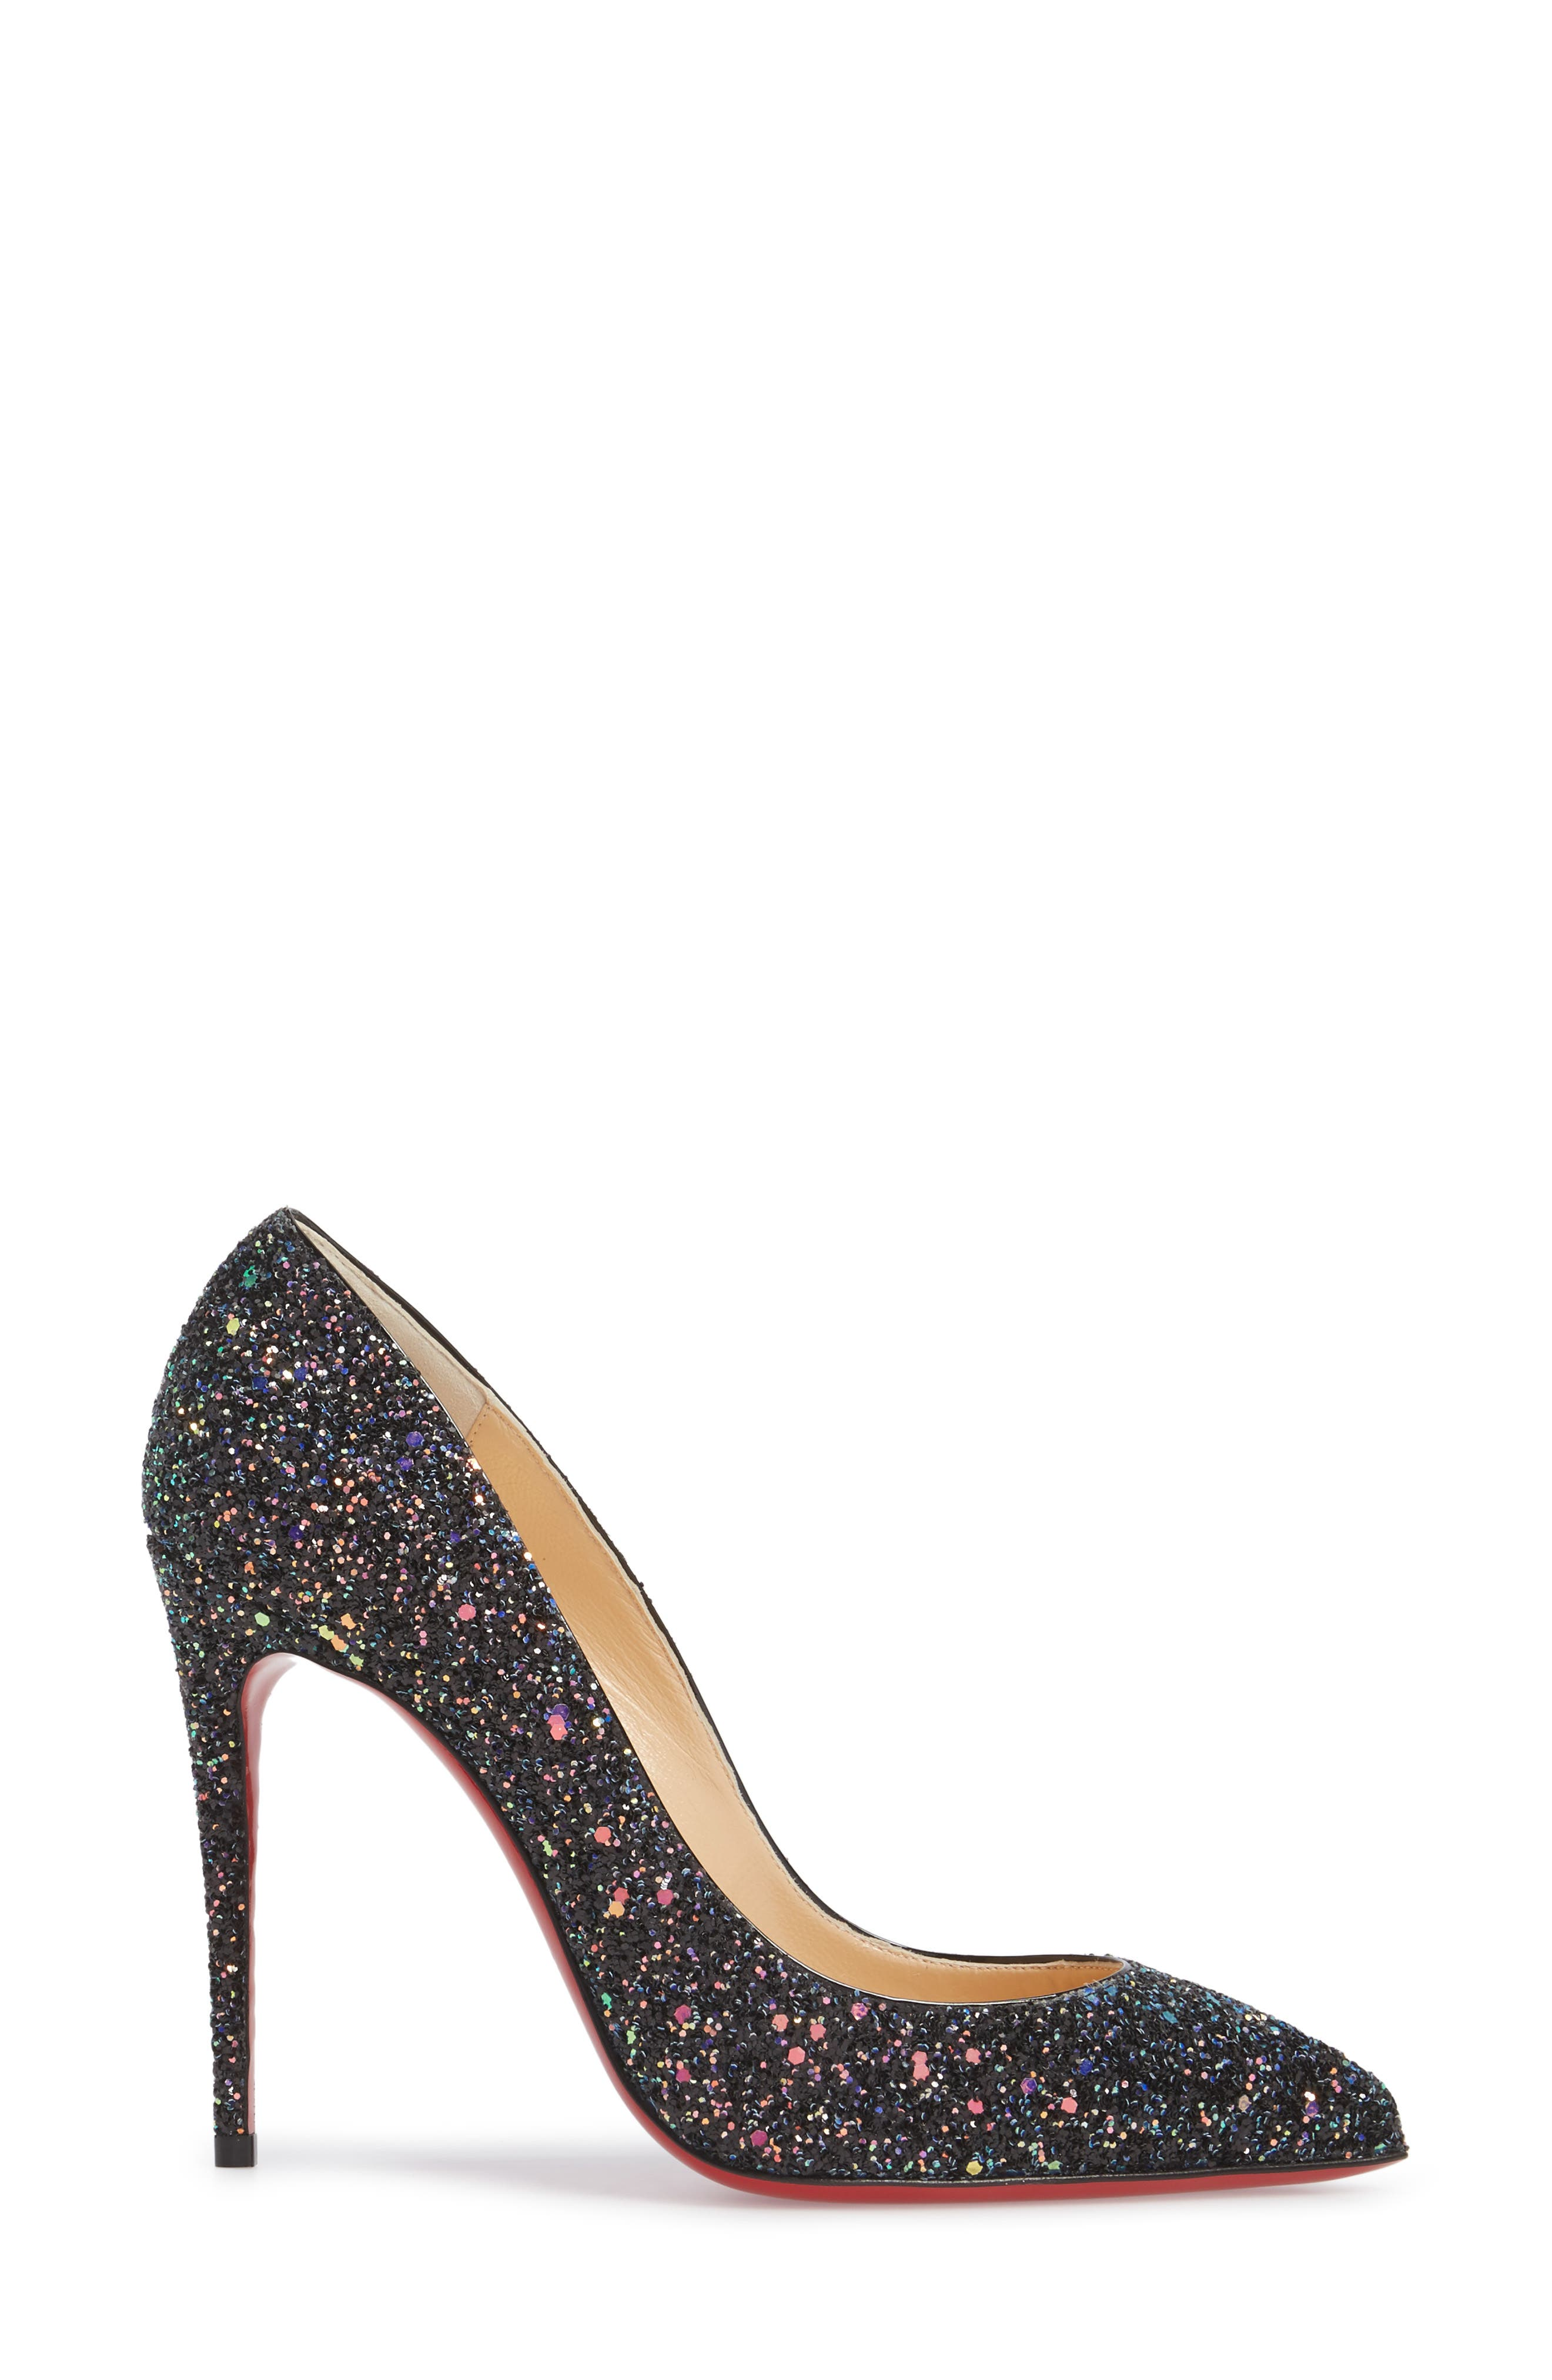 Pigalle Follies Glitter Pointy Toe Pump,                             Alternate thumbnail 3, color,                             001